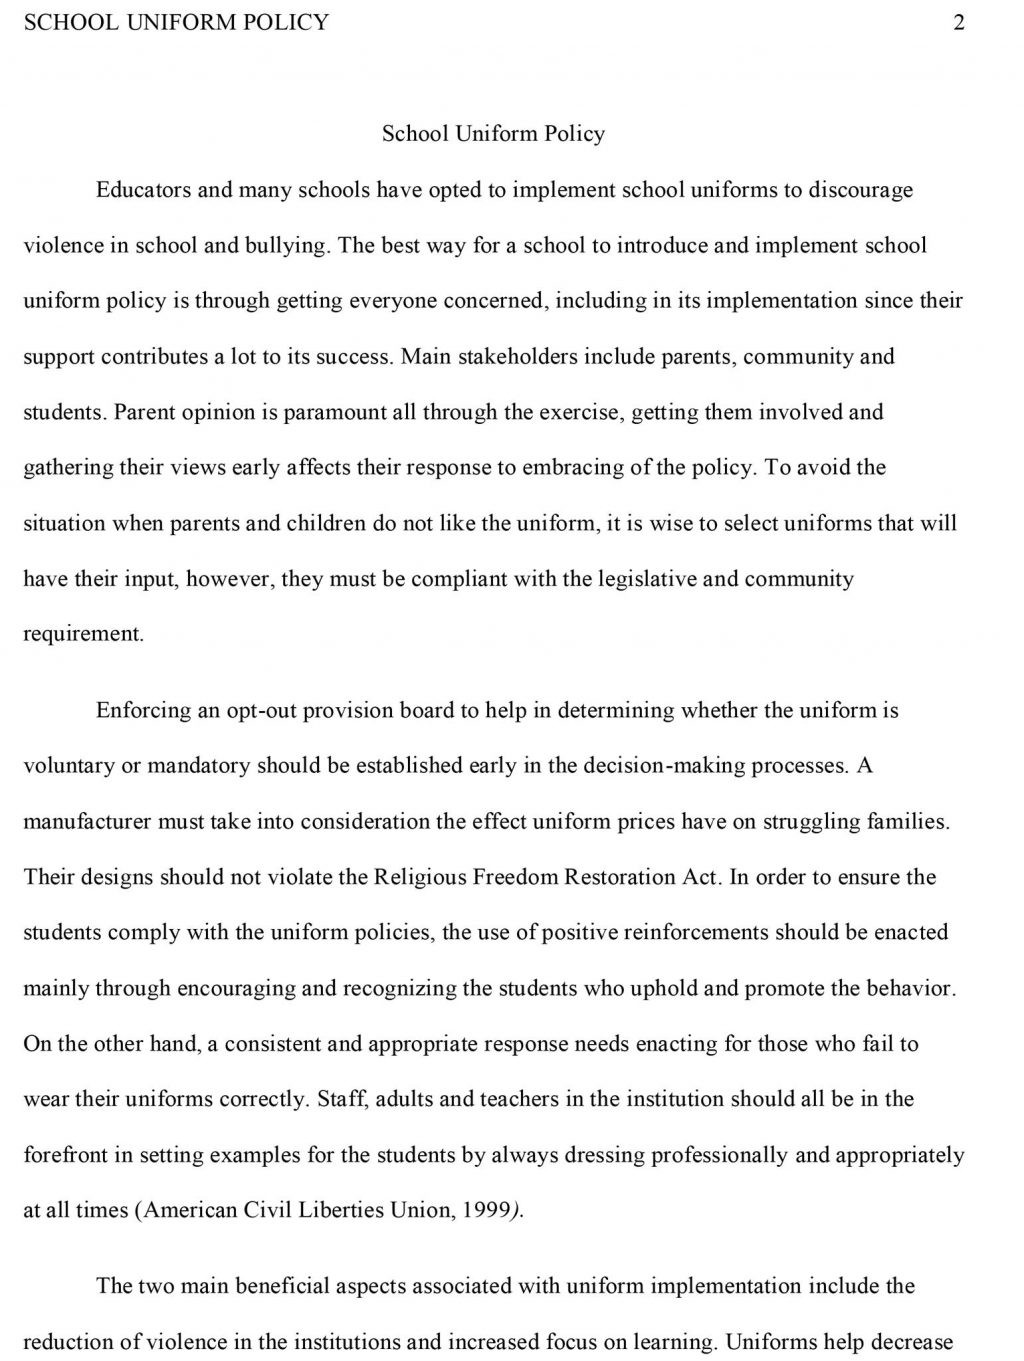 007 Research Paper How To Write Conclusion For Pdf Should Students Wear School20niforms Essay Title Argumentative Against Cons20 Amazing A Large